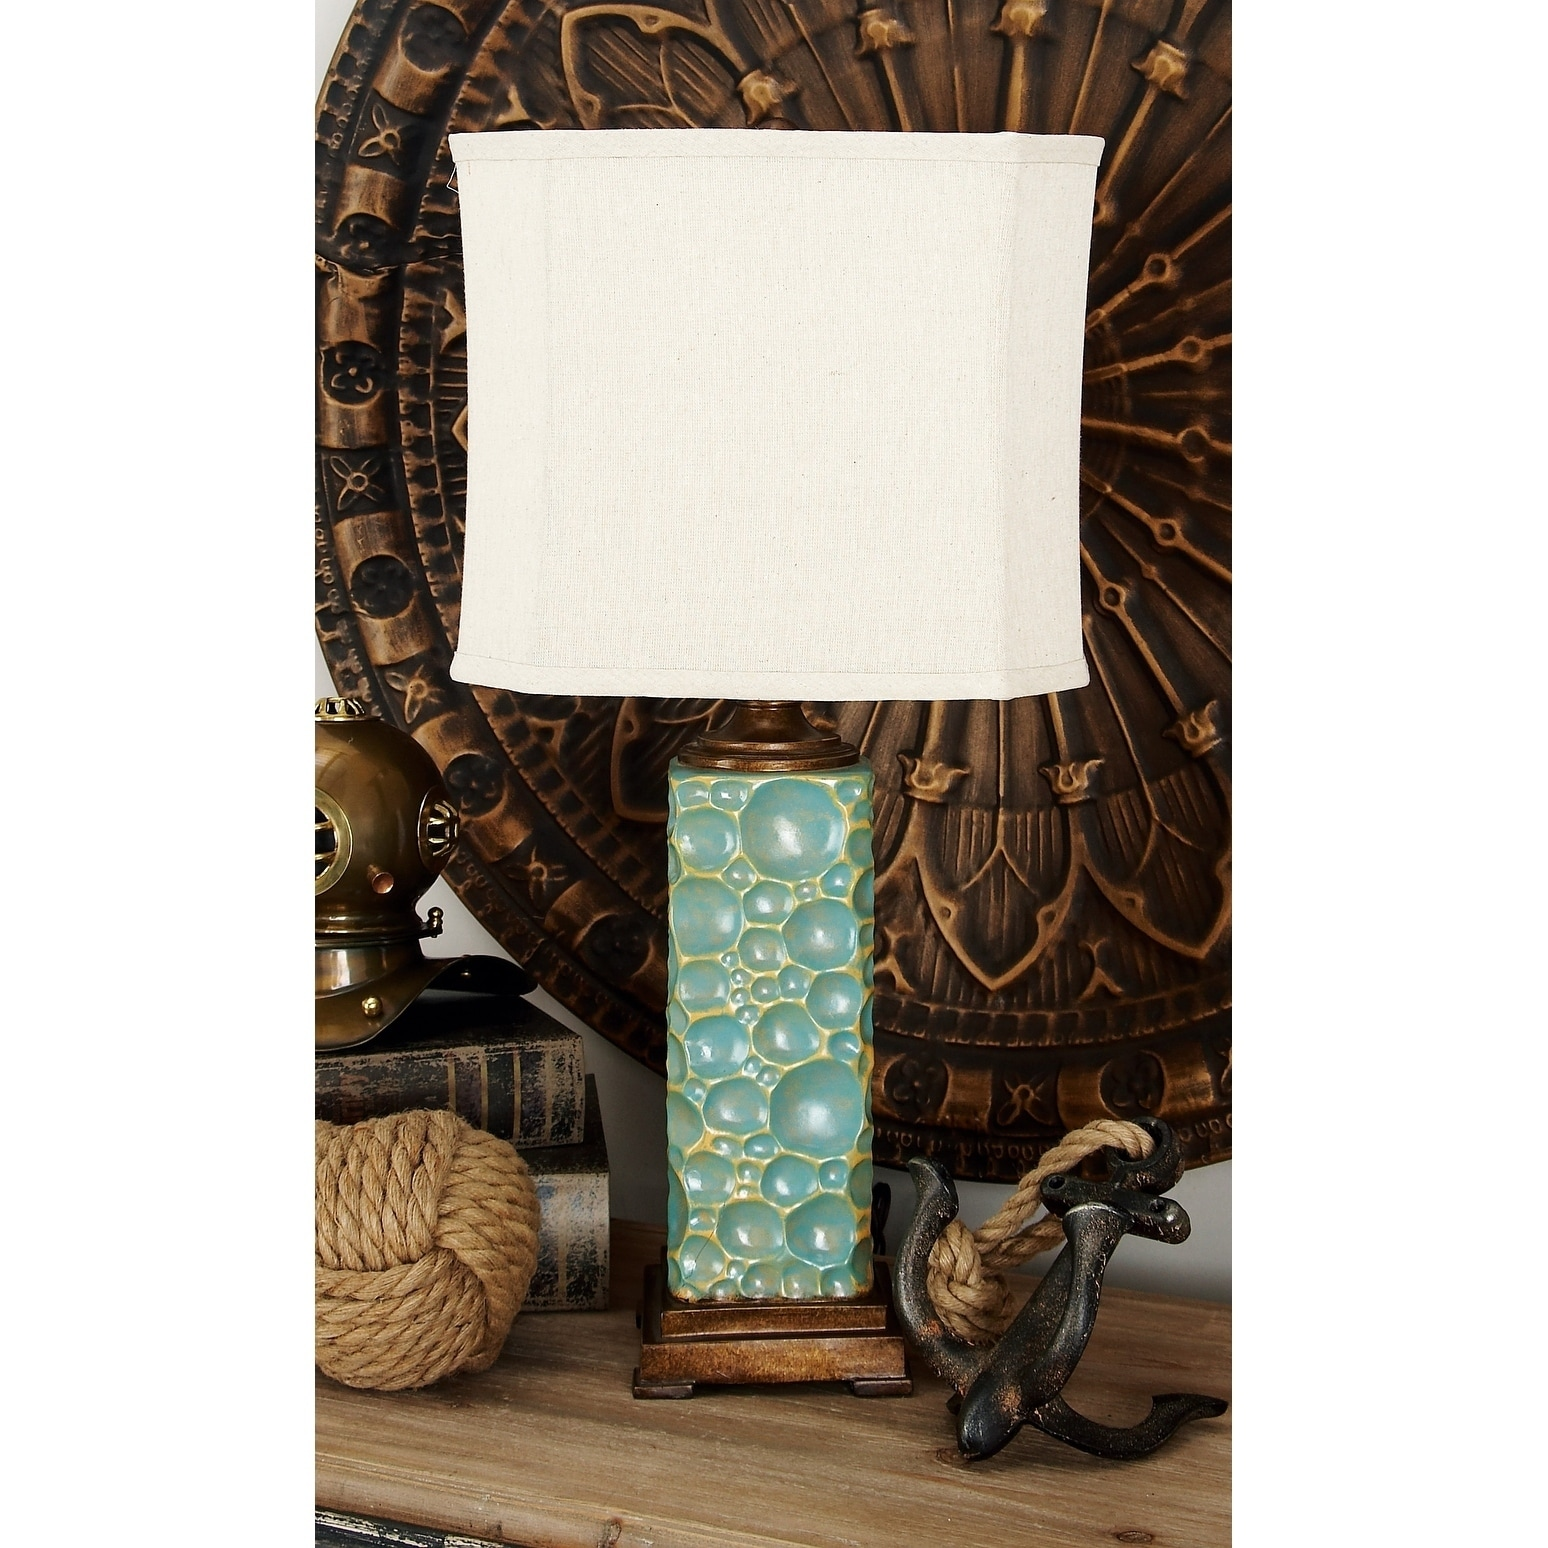 Studio 350 Set of 2, Polystone Table Lamp 30 inches high,...